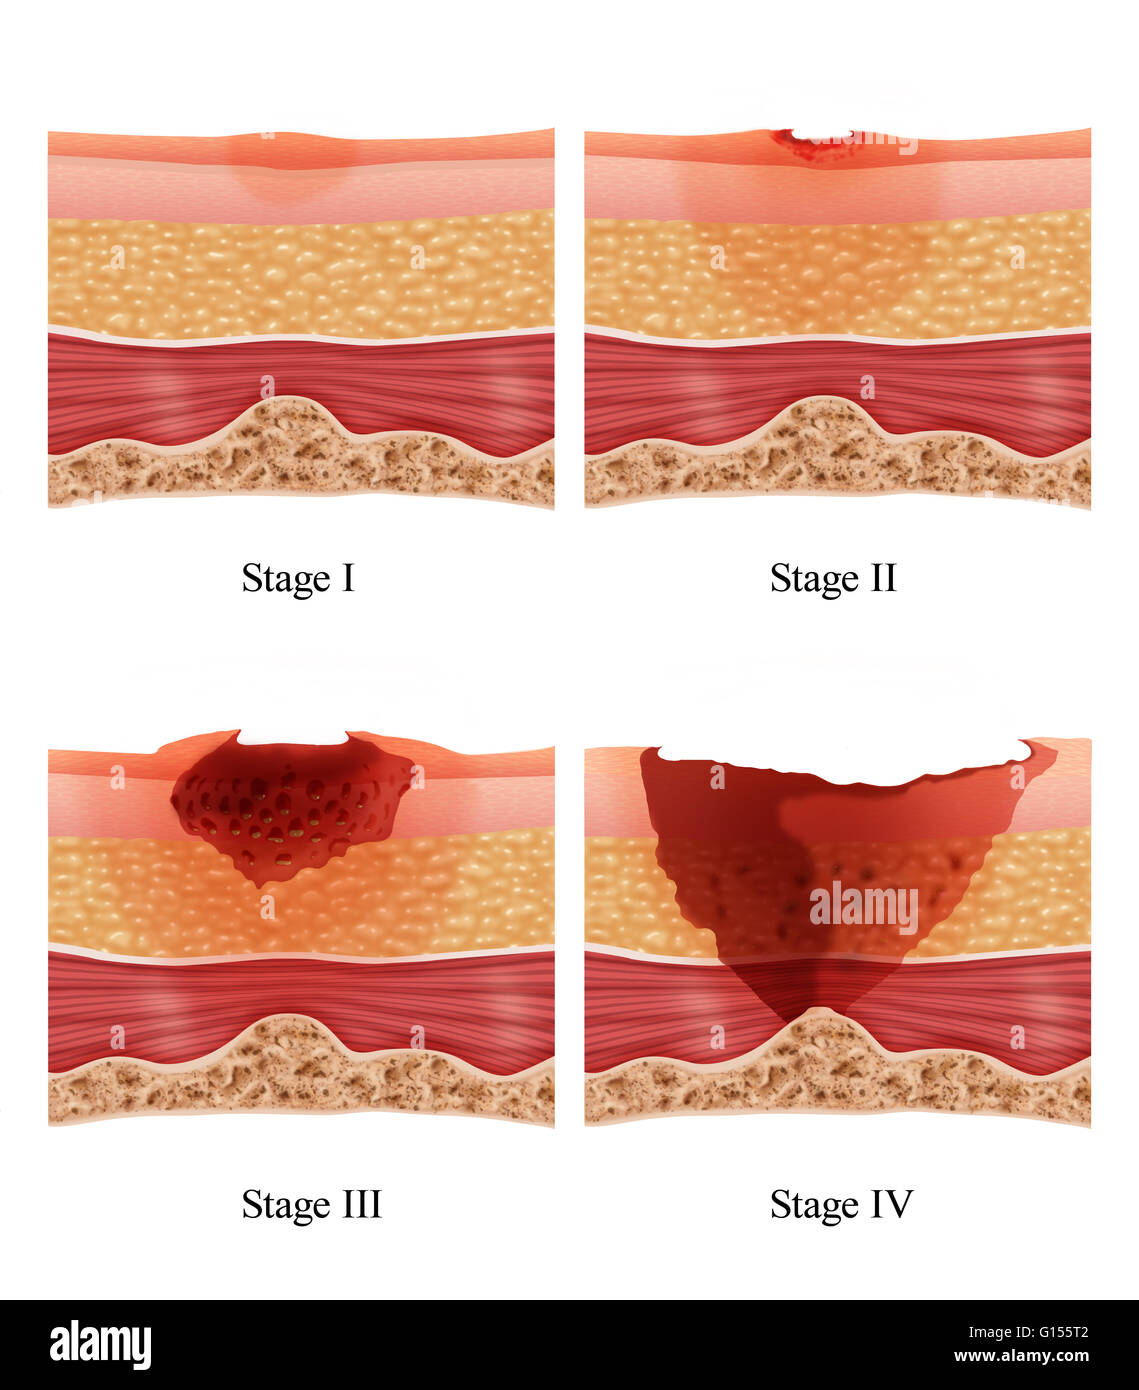 illustration showing the stages of of a bed sore or pressure ulcer